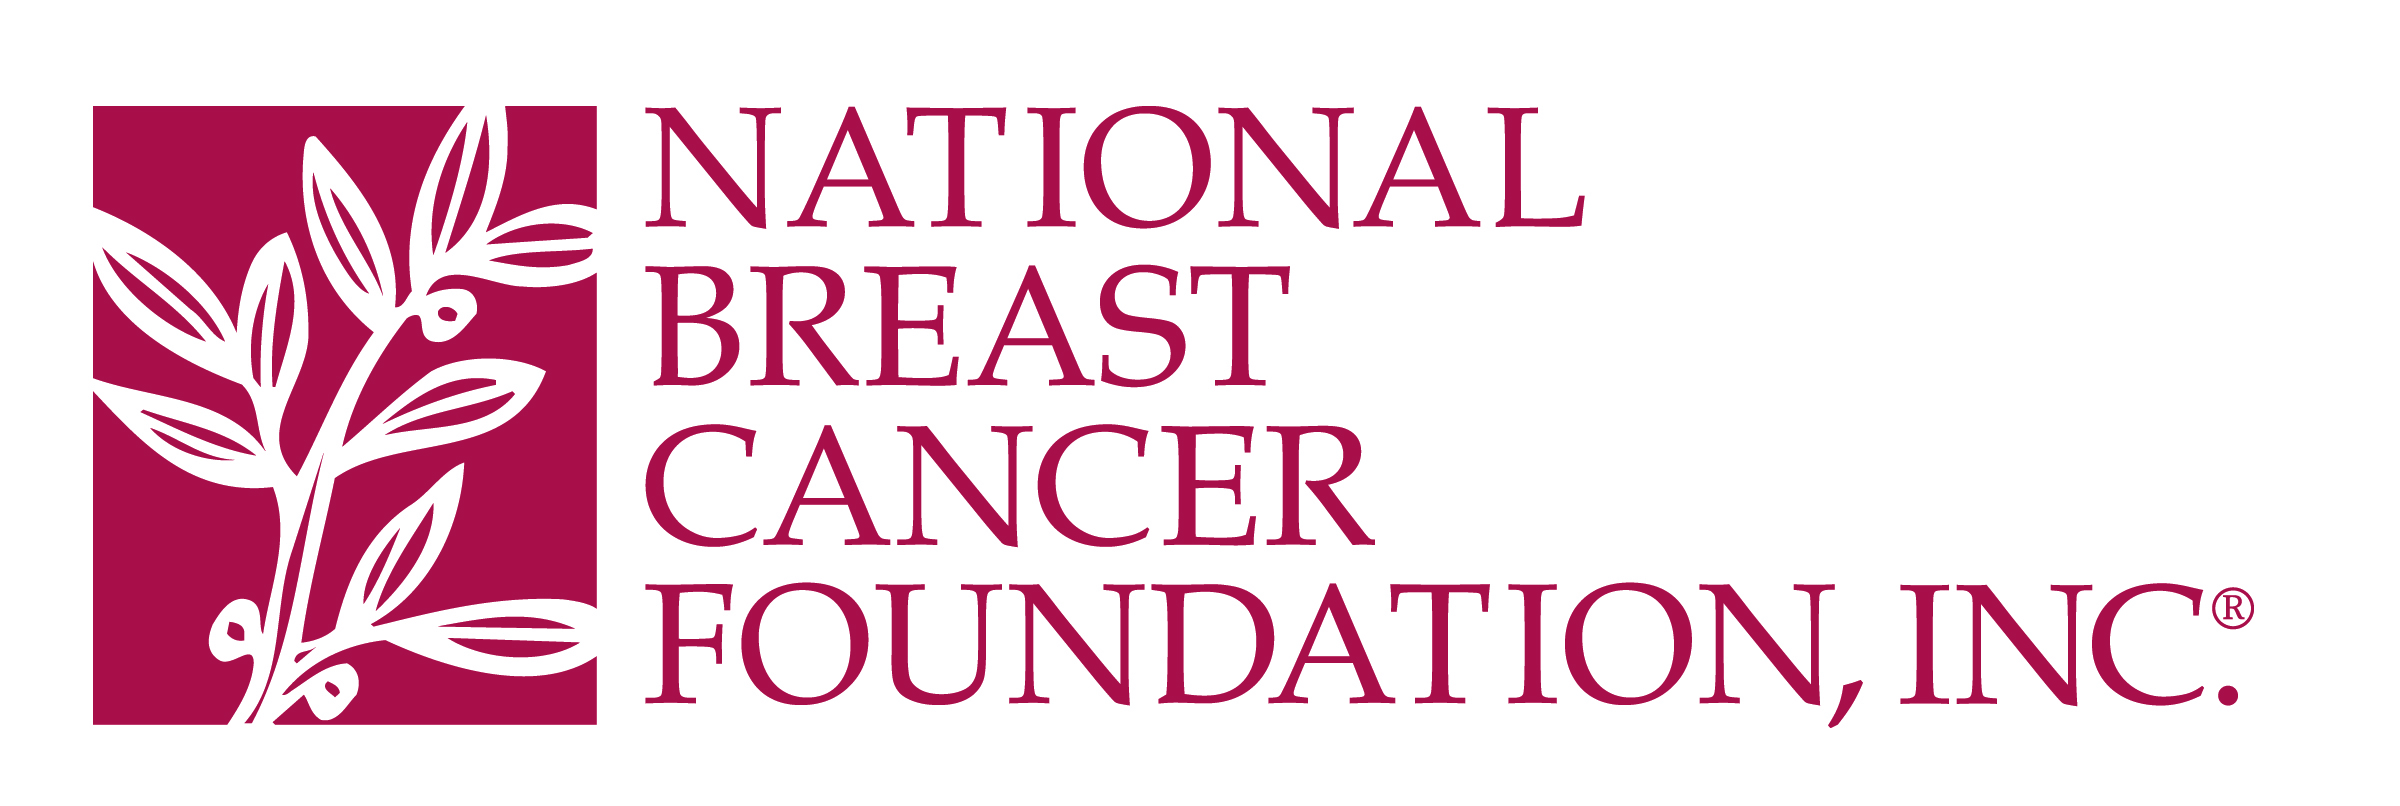 National Breast Cance Foundation